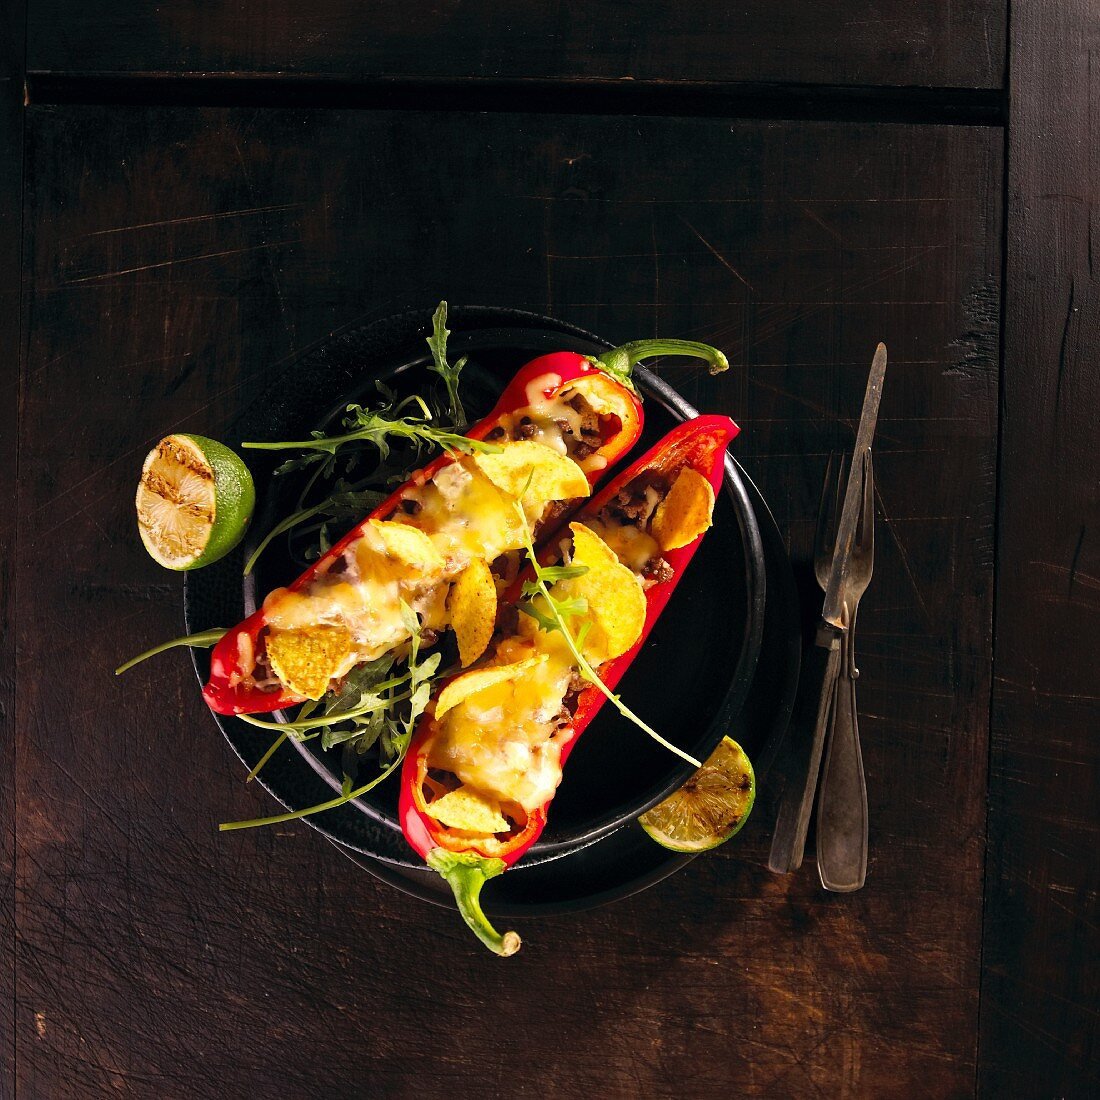 Red peppers stuffed with nachos (Mexico)